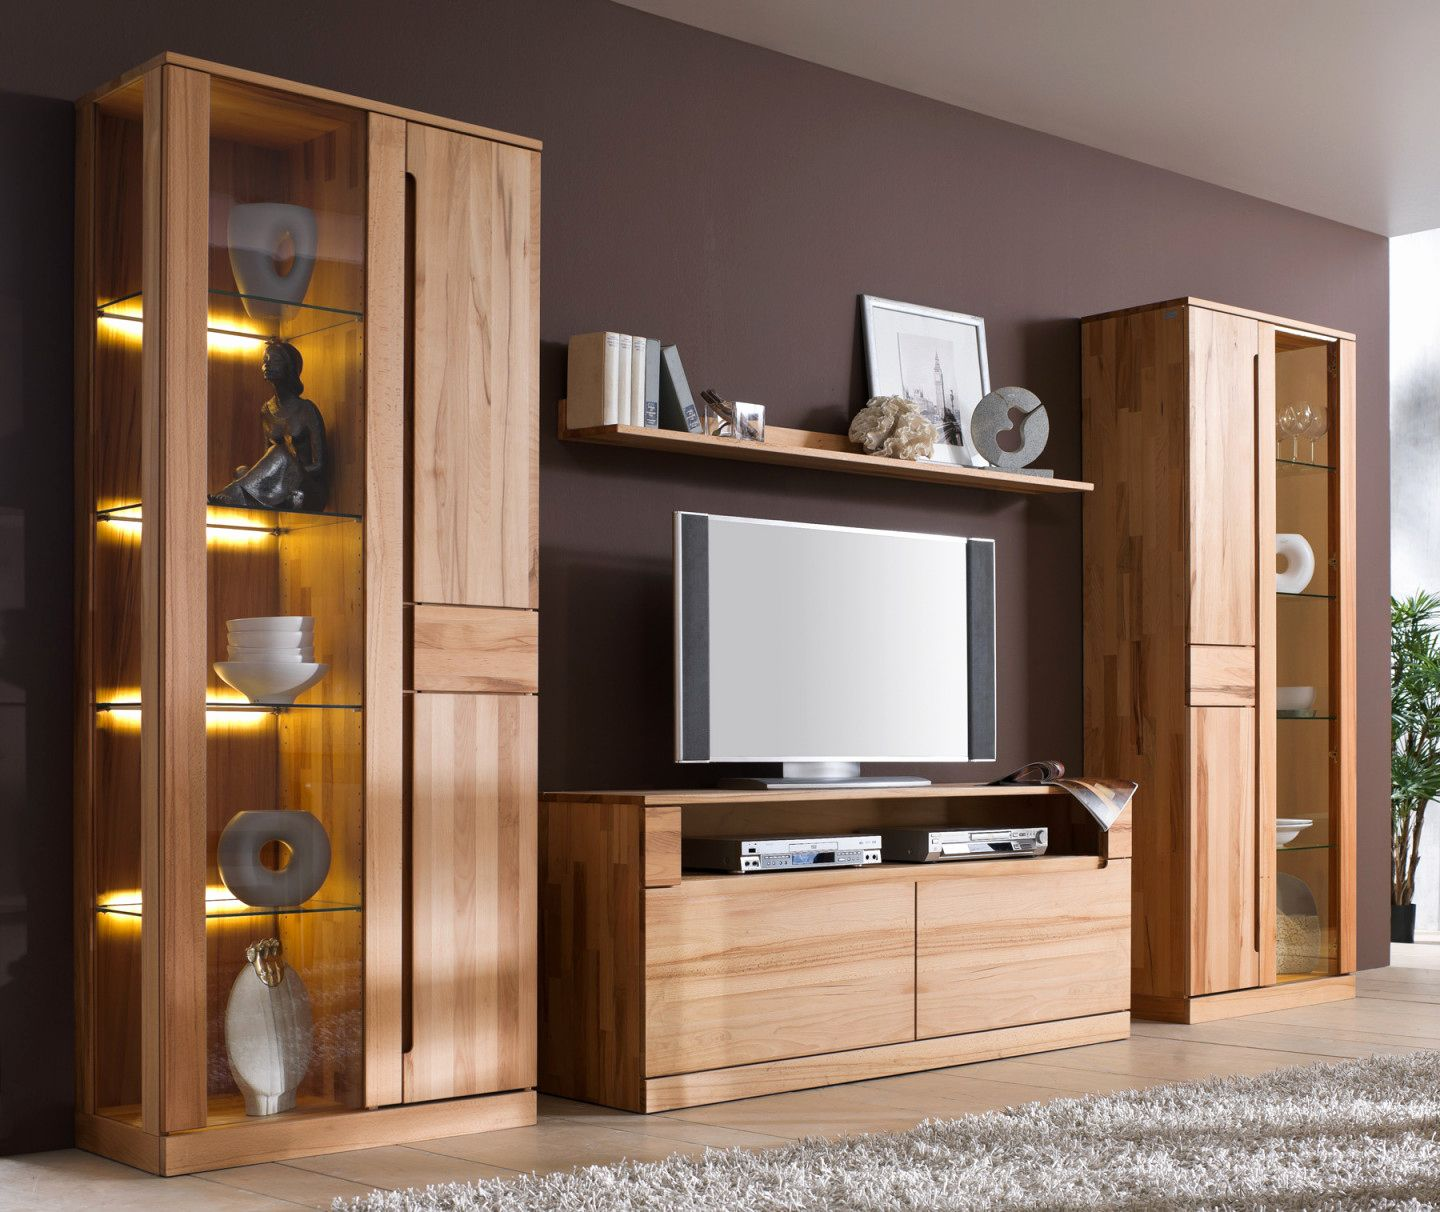 Wohnzimmerschrank Massiv Buche  Furniture, Home office design